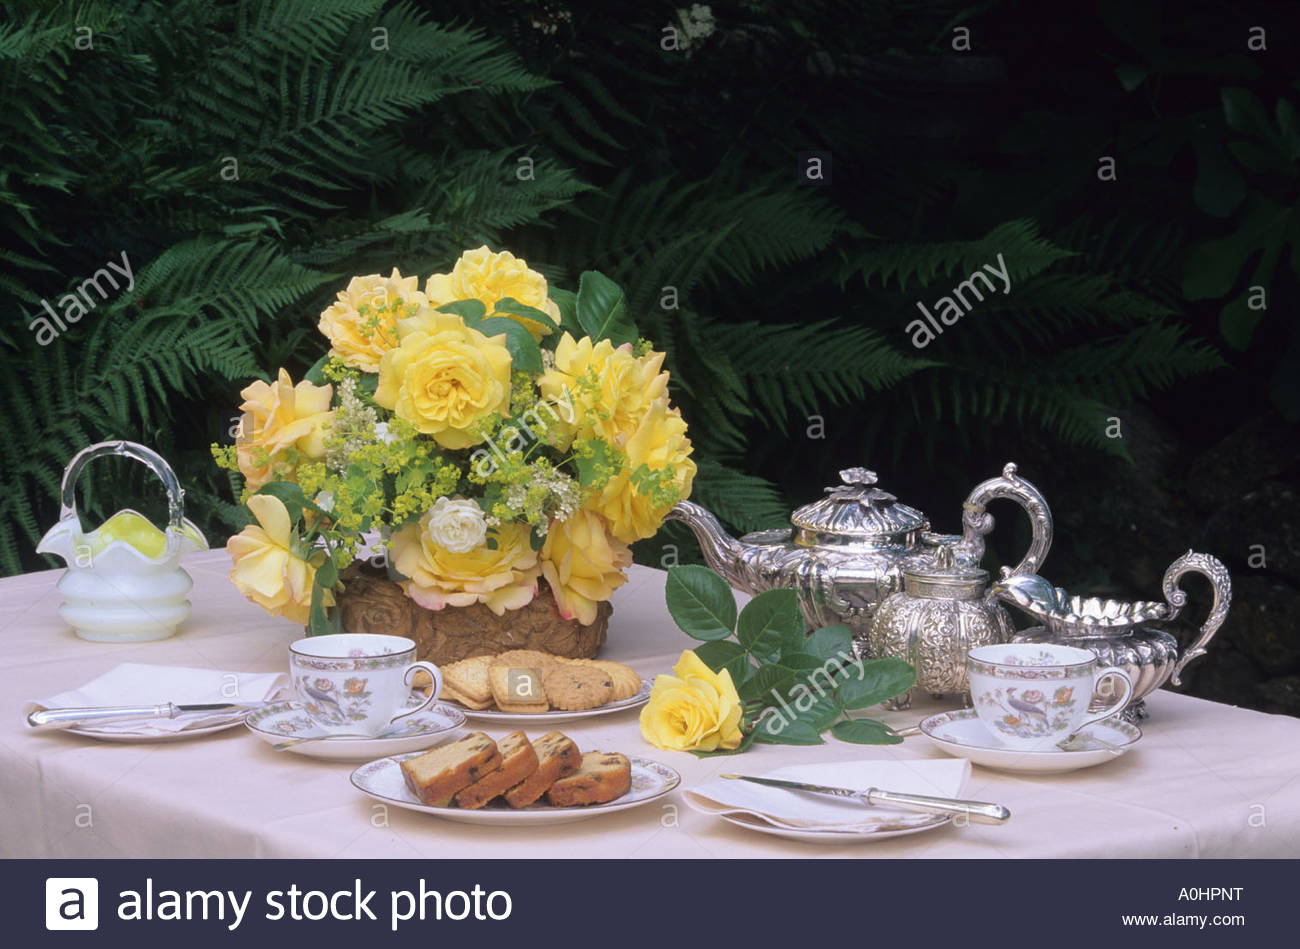 Cut roses in vase on dining table set for tea outside - Stock Image